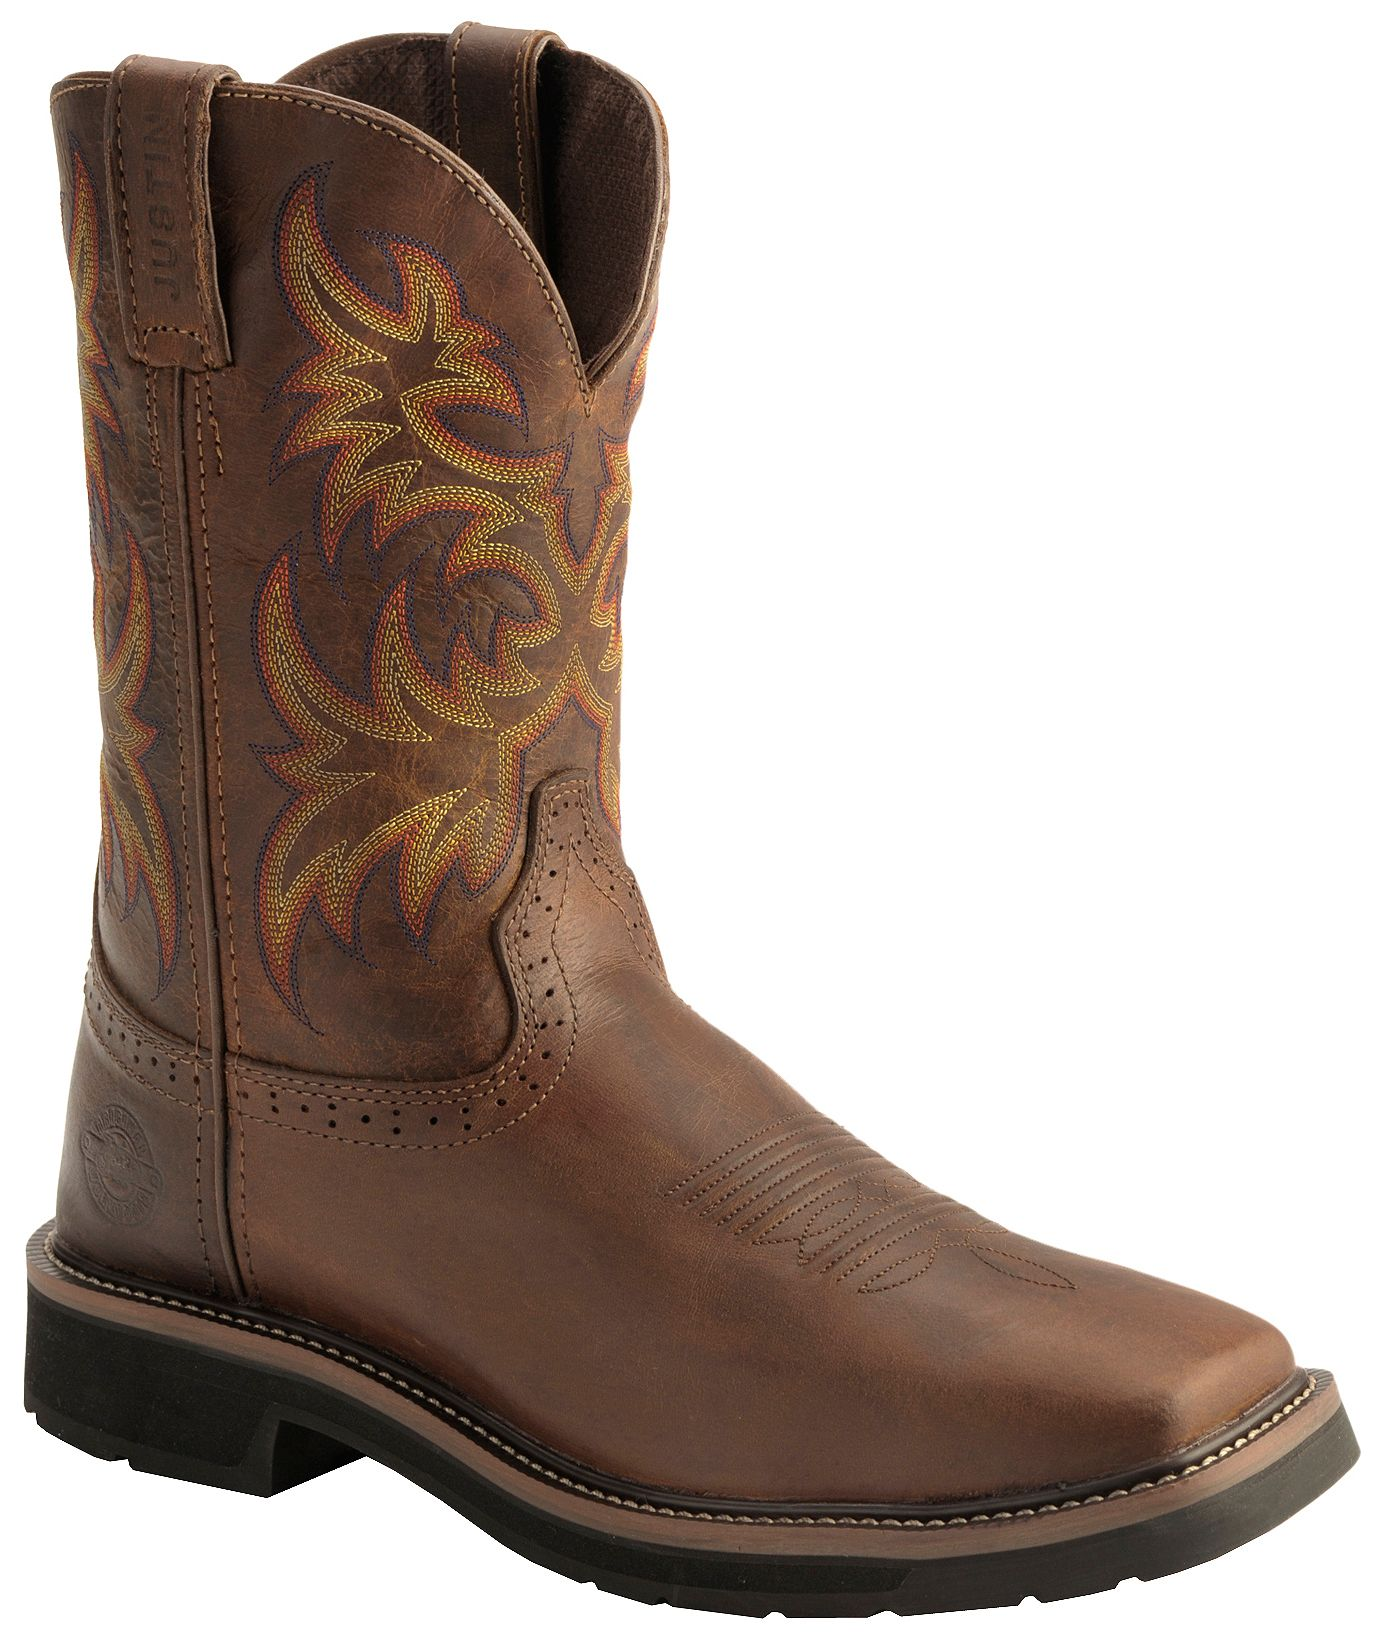 Justin Boots Reviews